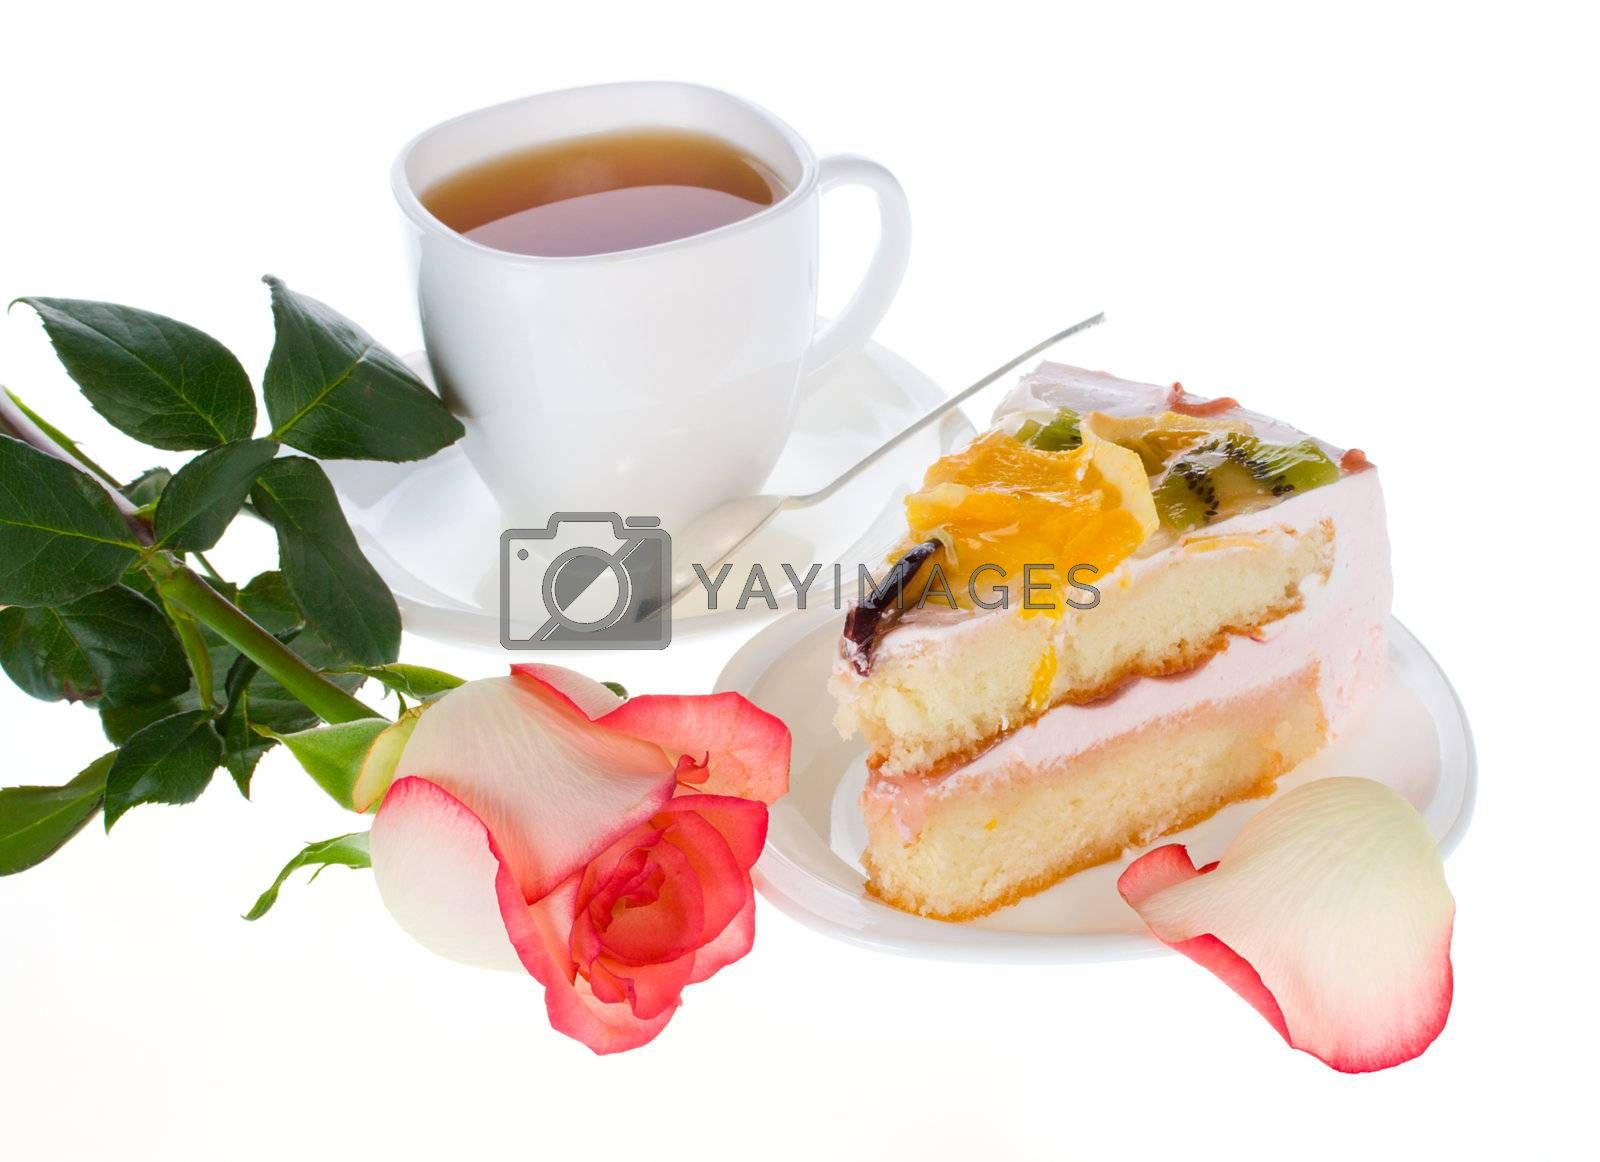 rose cake with fruits and cup of tea, isolated on white